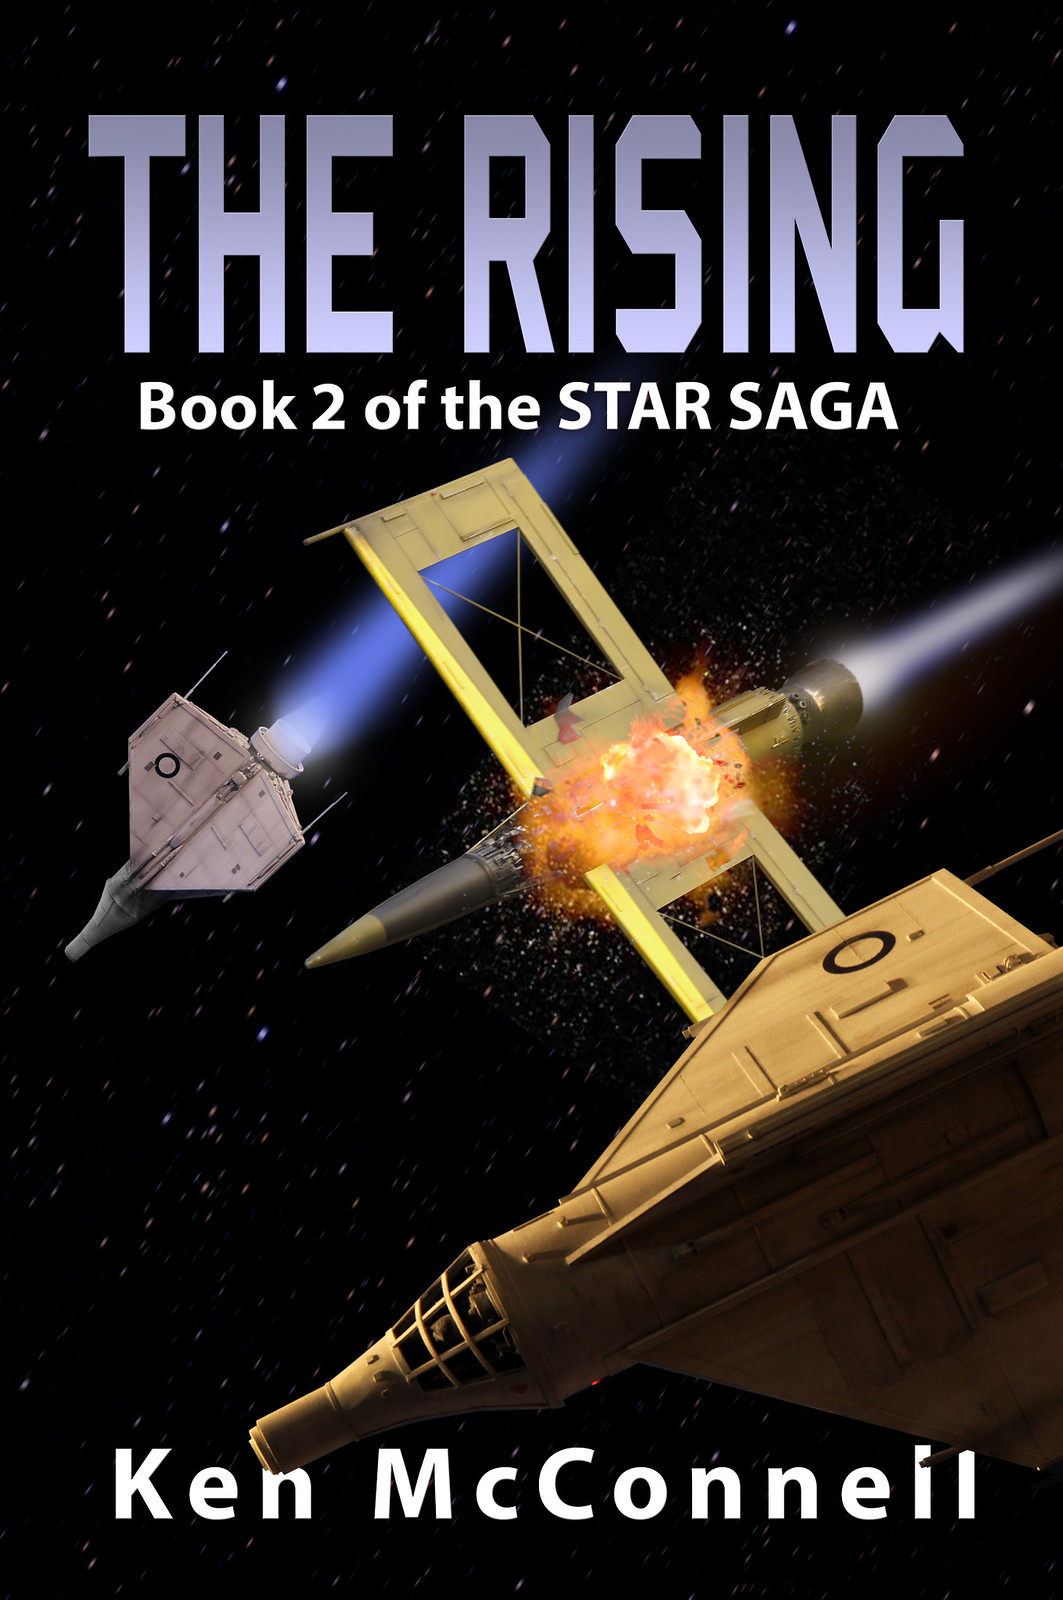 The Rising Cover 1-30-16